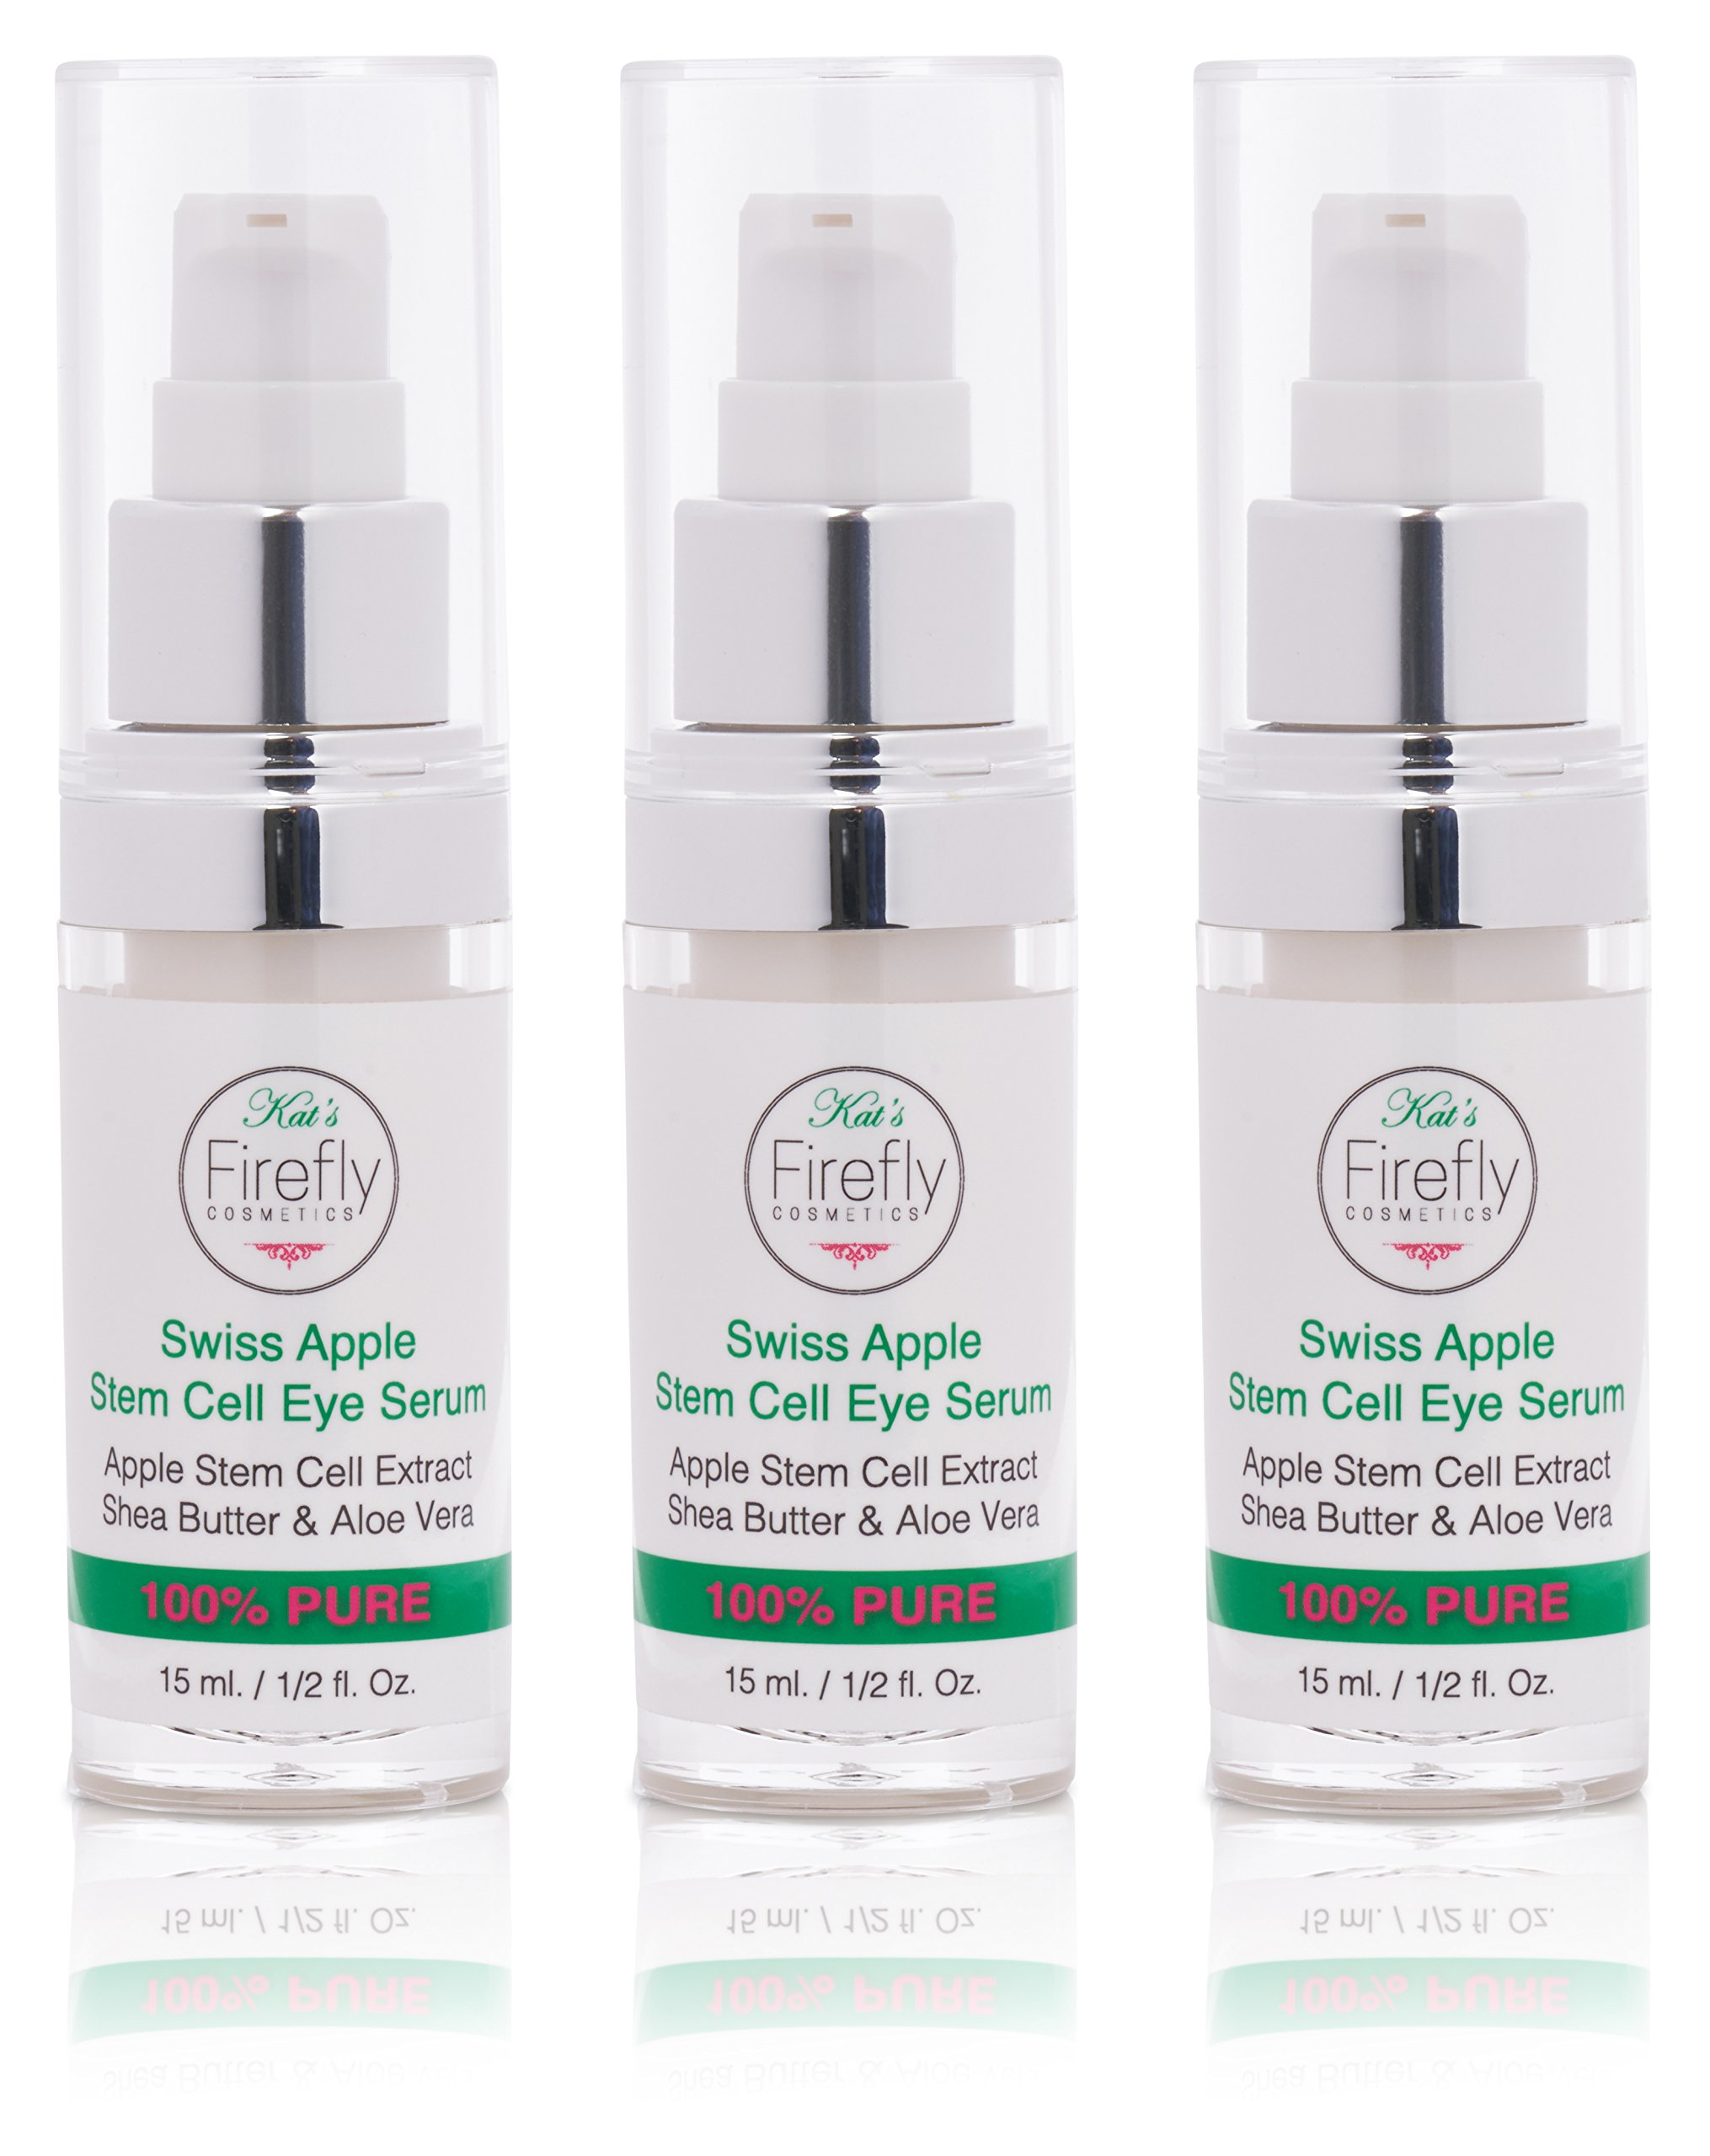 Kat's Firefly Cosmetics Stem Cell Eye Serum-Helps Reduce Wrinkles, Fine Lines, Dark Circles & Reduces Puffiness & Sagging Under The Eyes. Made With Shea Butter & Swiss Apple Technology 15ML.